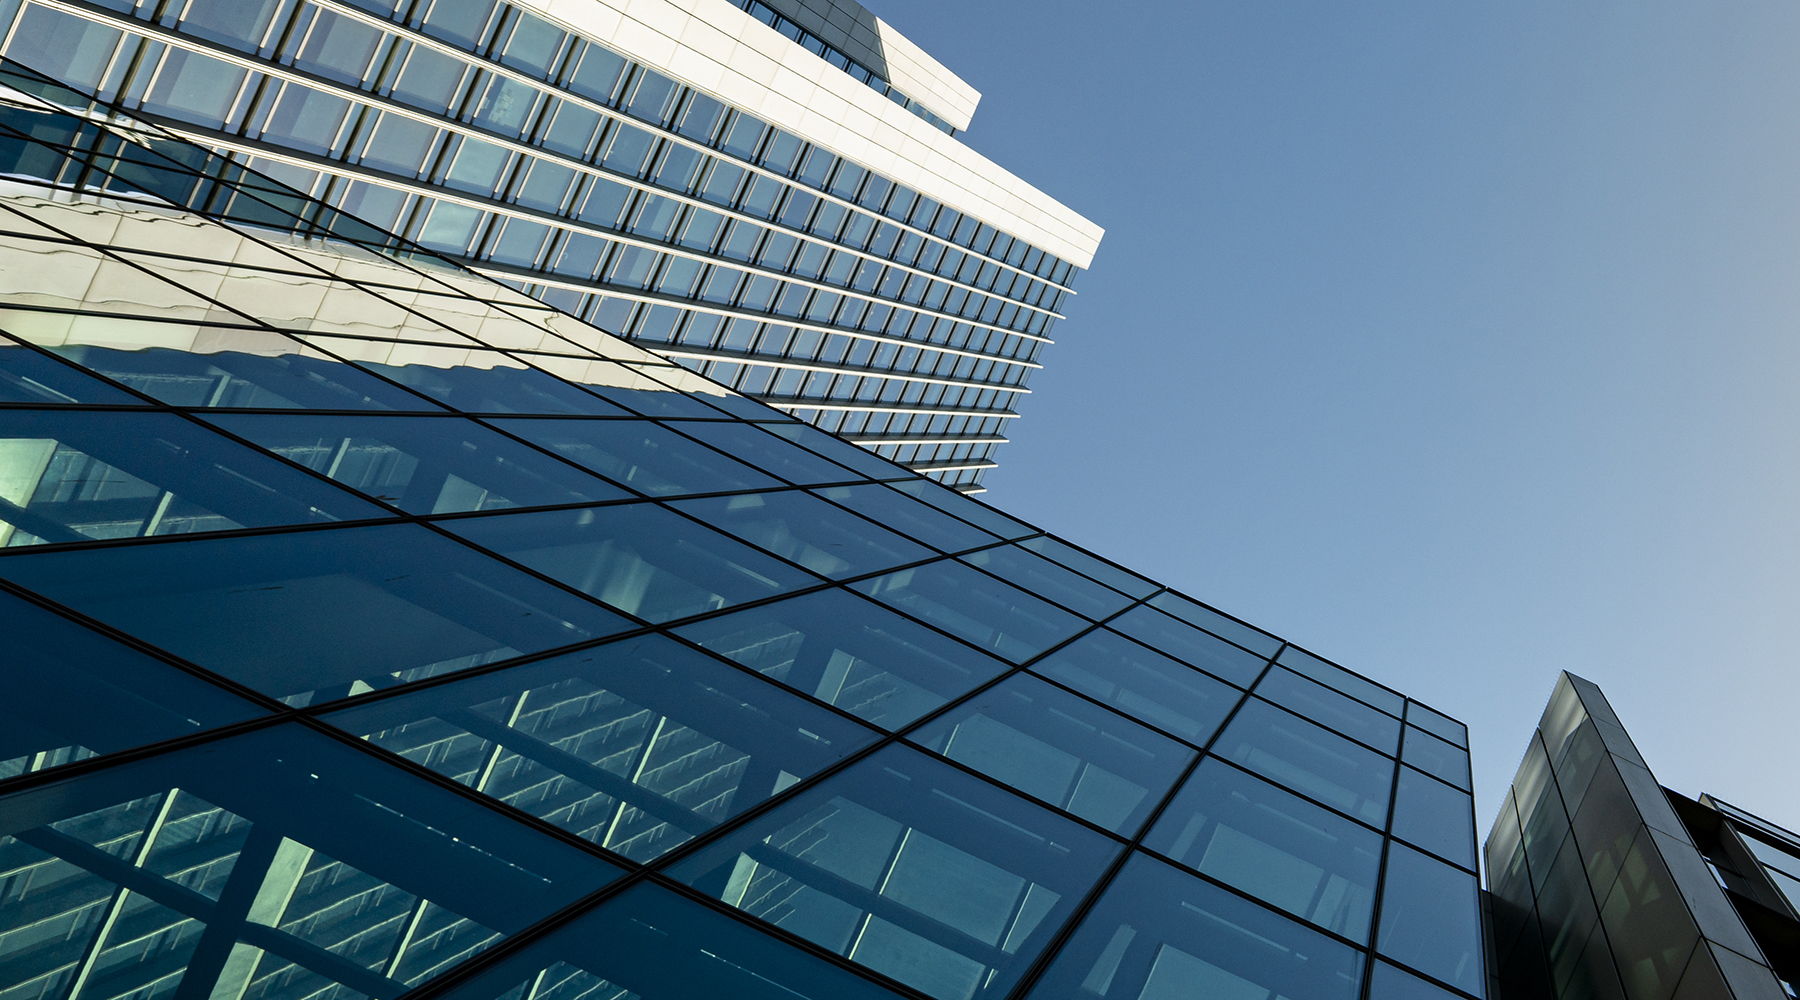 Modern city building architecture with glass fronts on a clear day in London, England panoramic